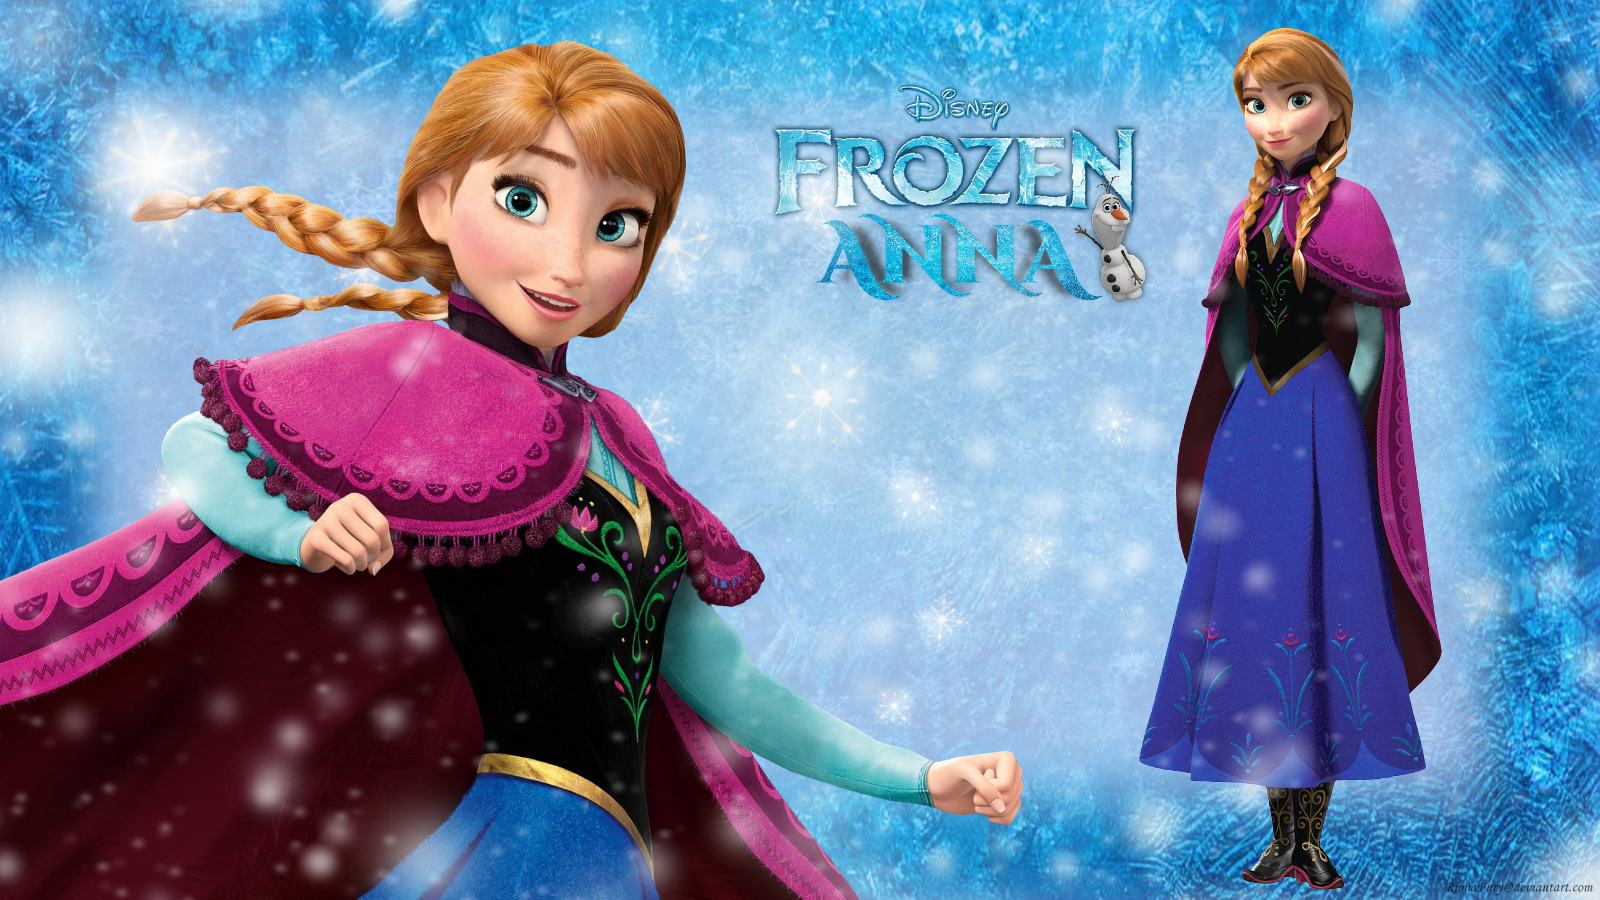 Frozen Anna - Disney Princess Wallpaper (37731324) - Fanpop